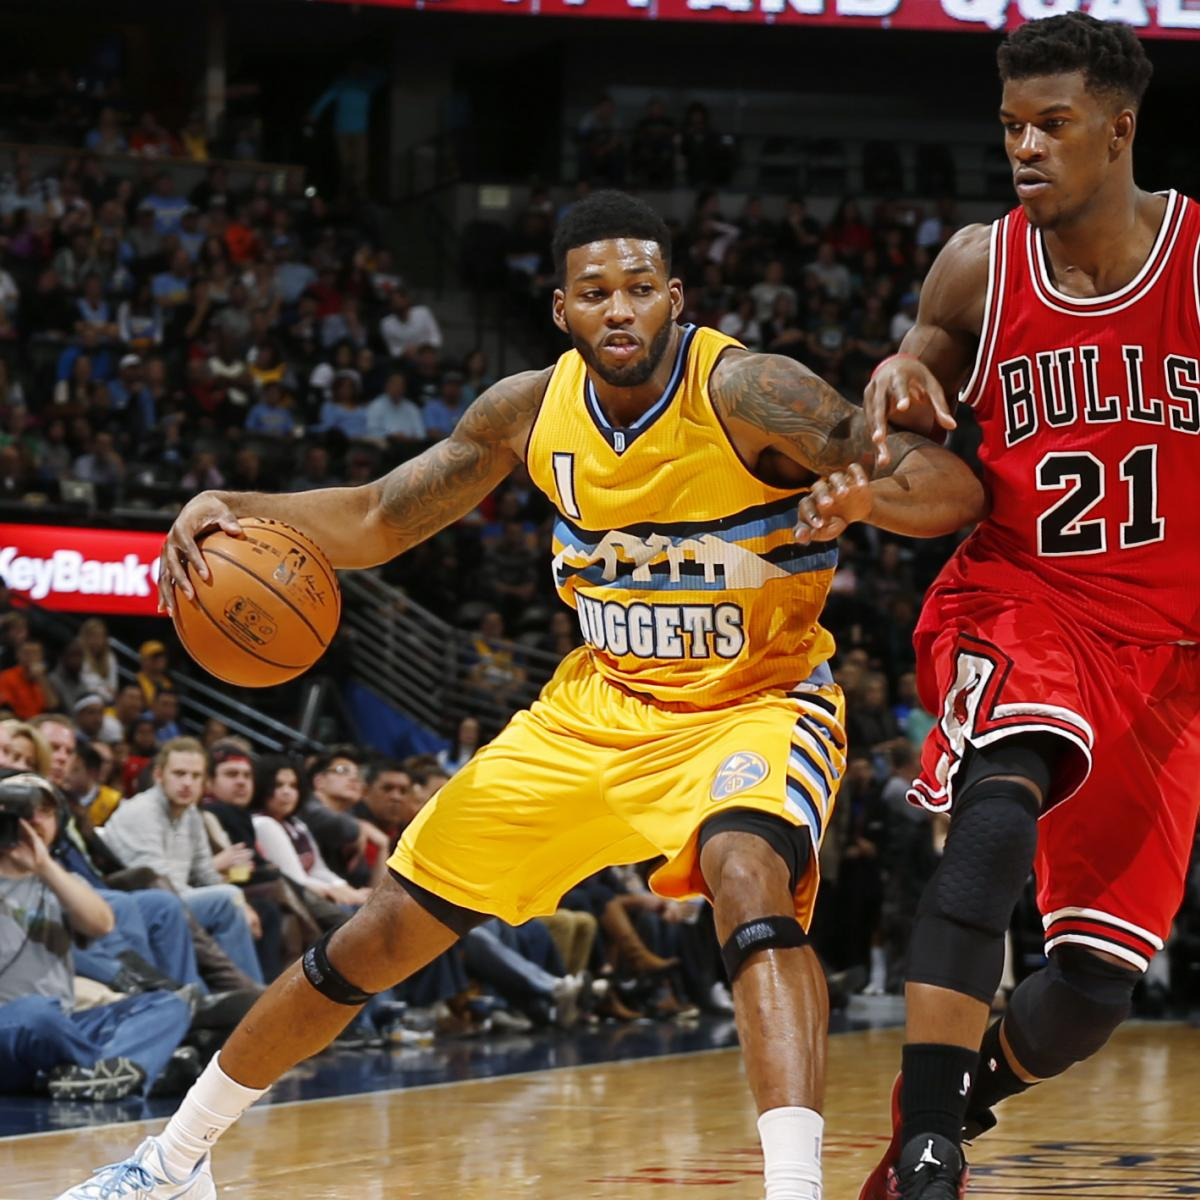 Chicago Bulls Vs. Denver Nuggets 11/25/14: Video